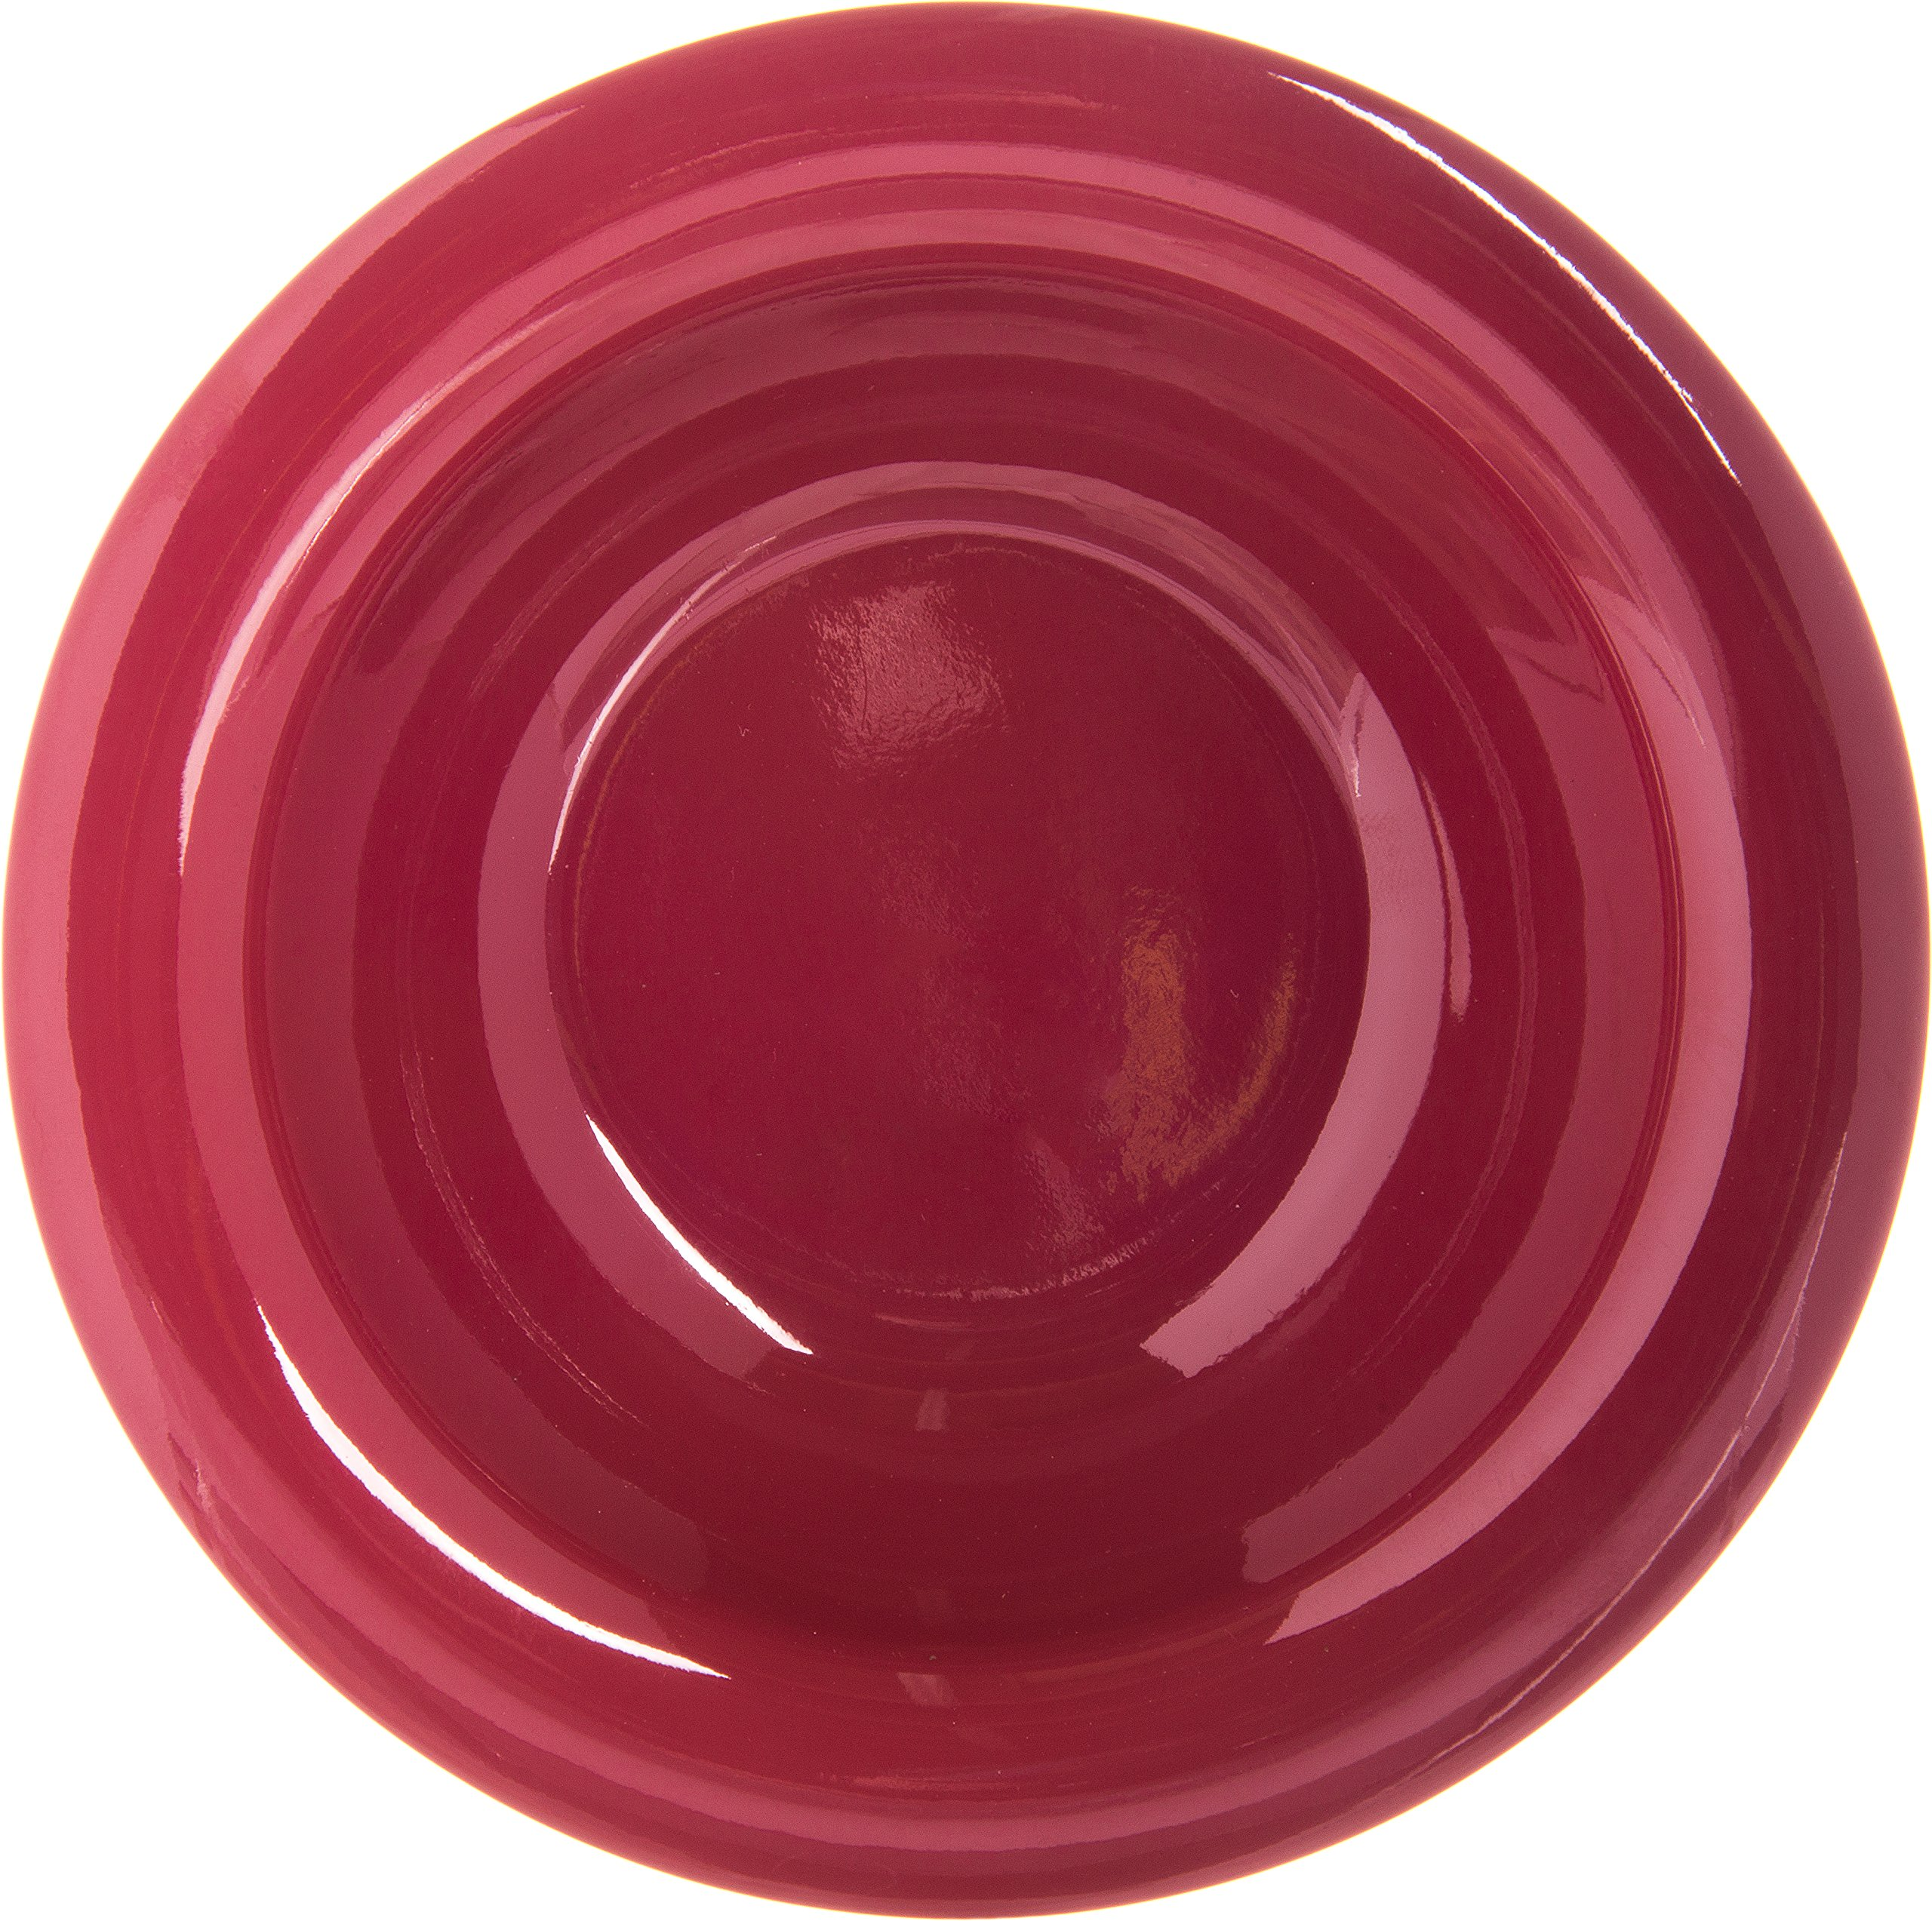 Carlisle 4304258 Durus Rimmed Melamine Fruit Bowl, 4 Oz., Roma Red (Pack of 48) by Carlisle (Image #3)